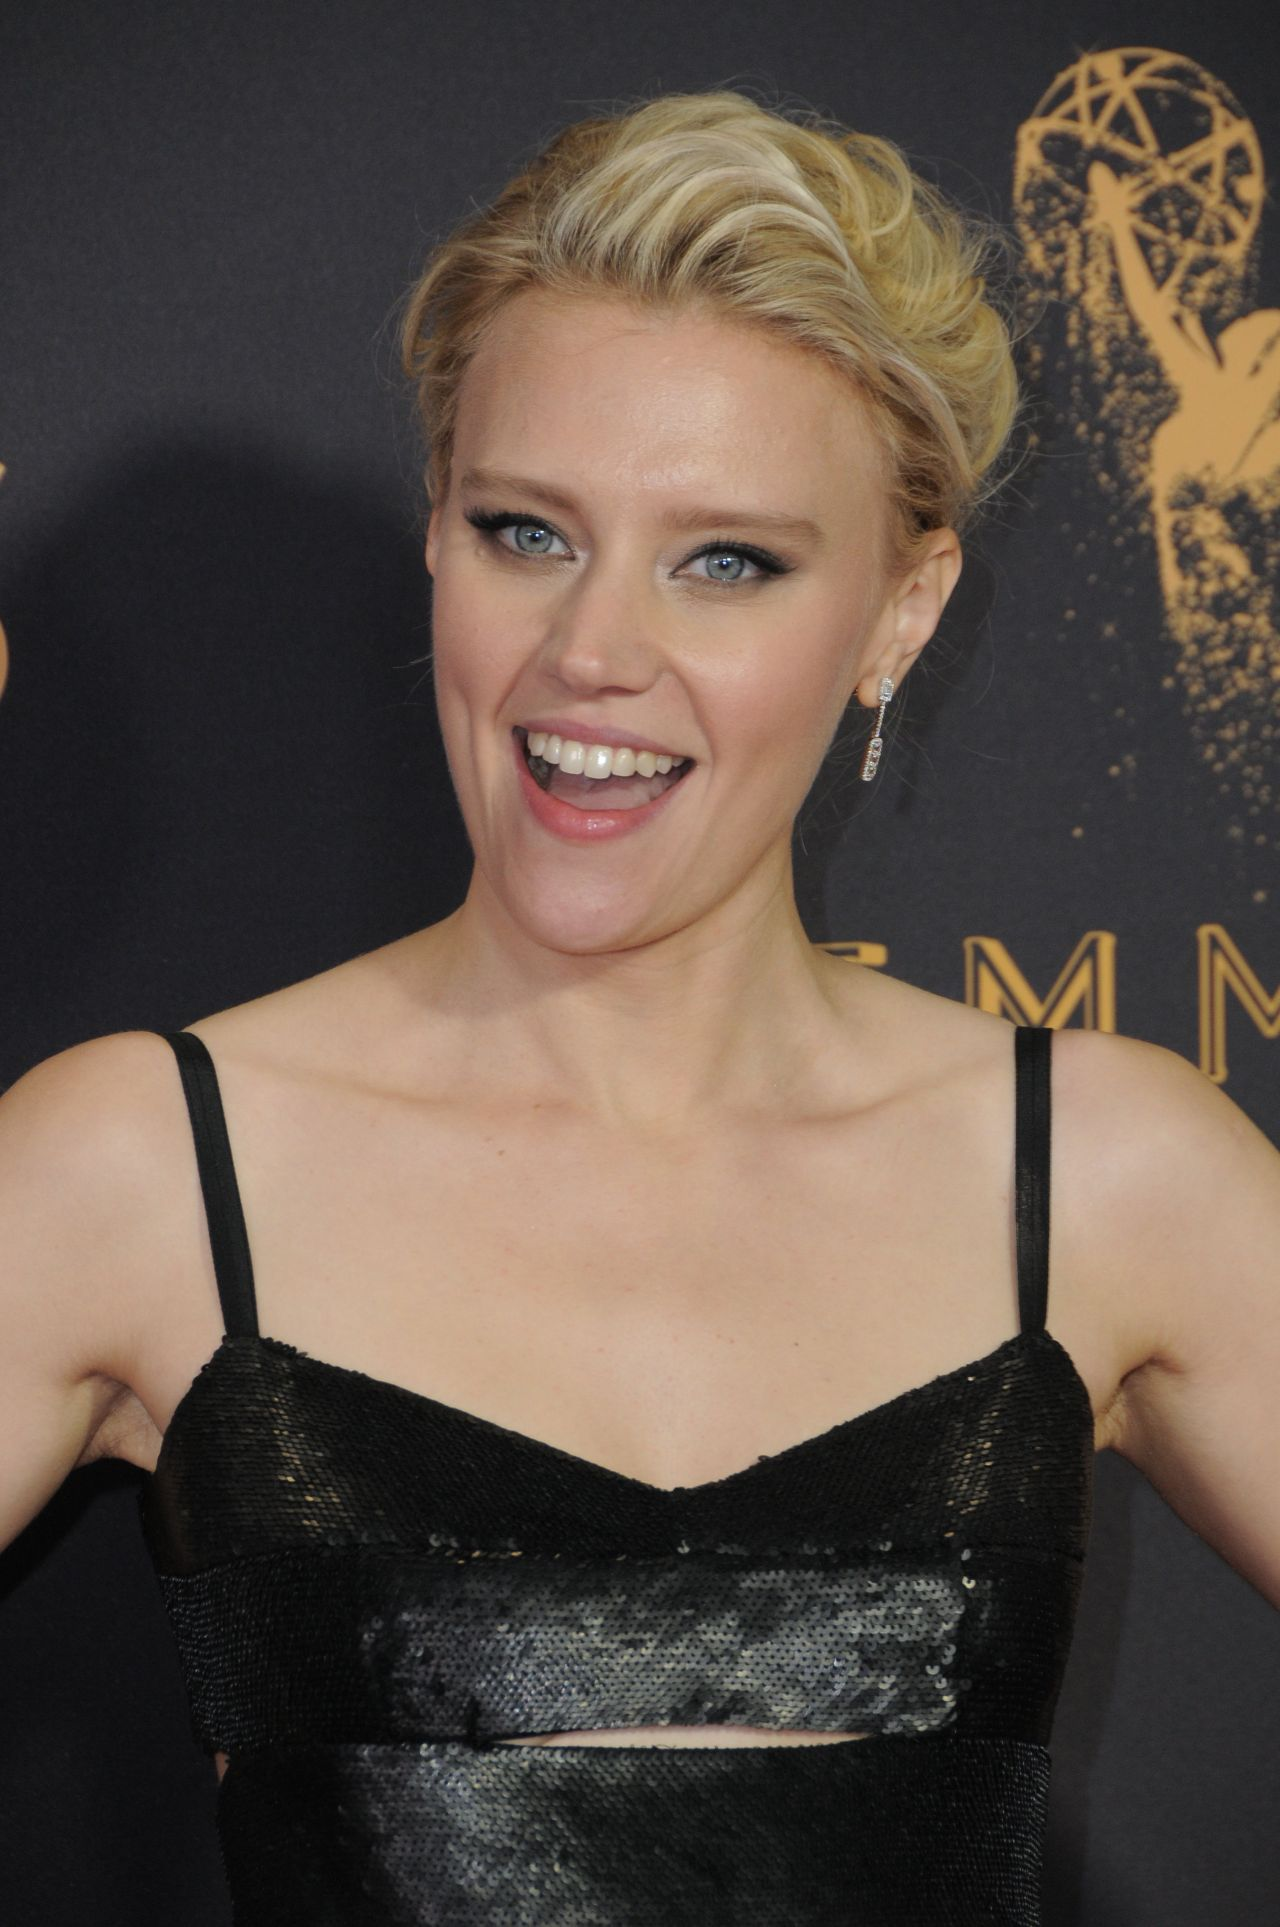 Kate Mckinnon Emmy Awards In Los Angeles 09 17 2017